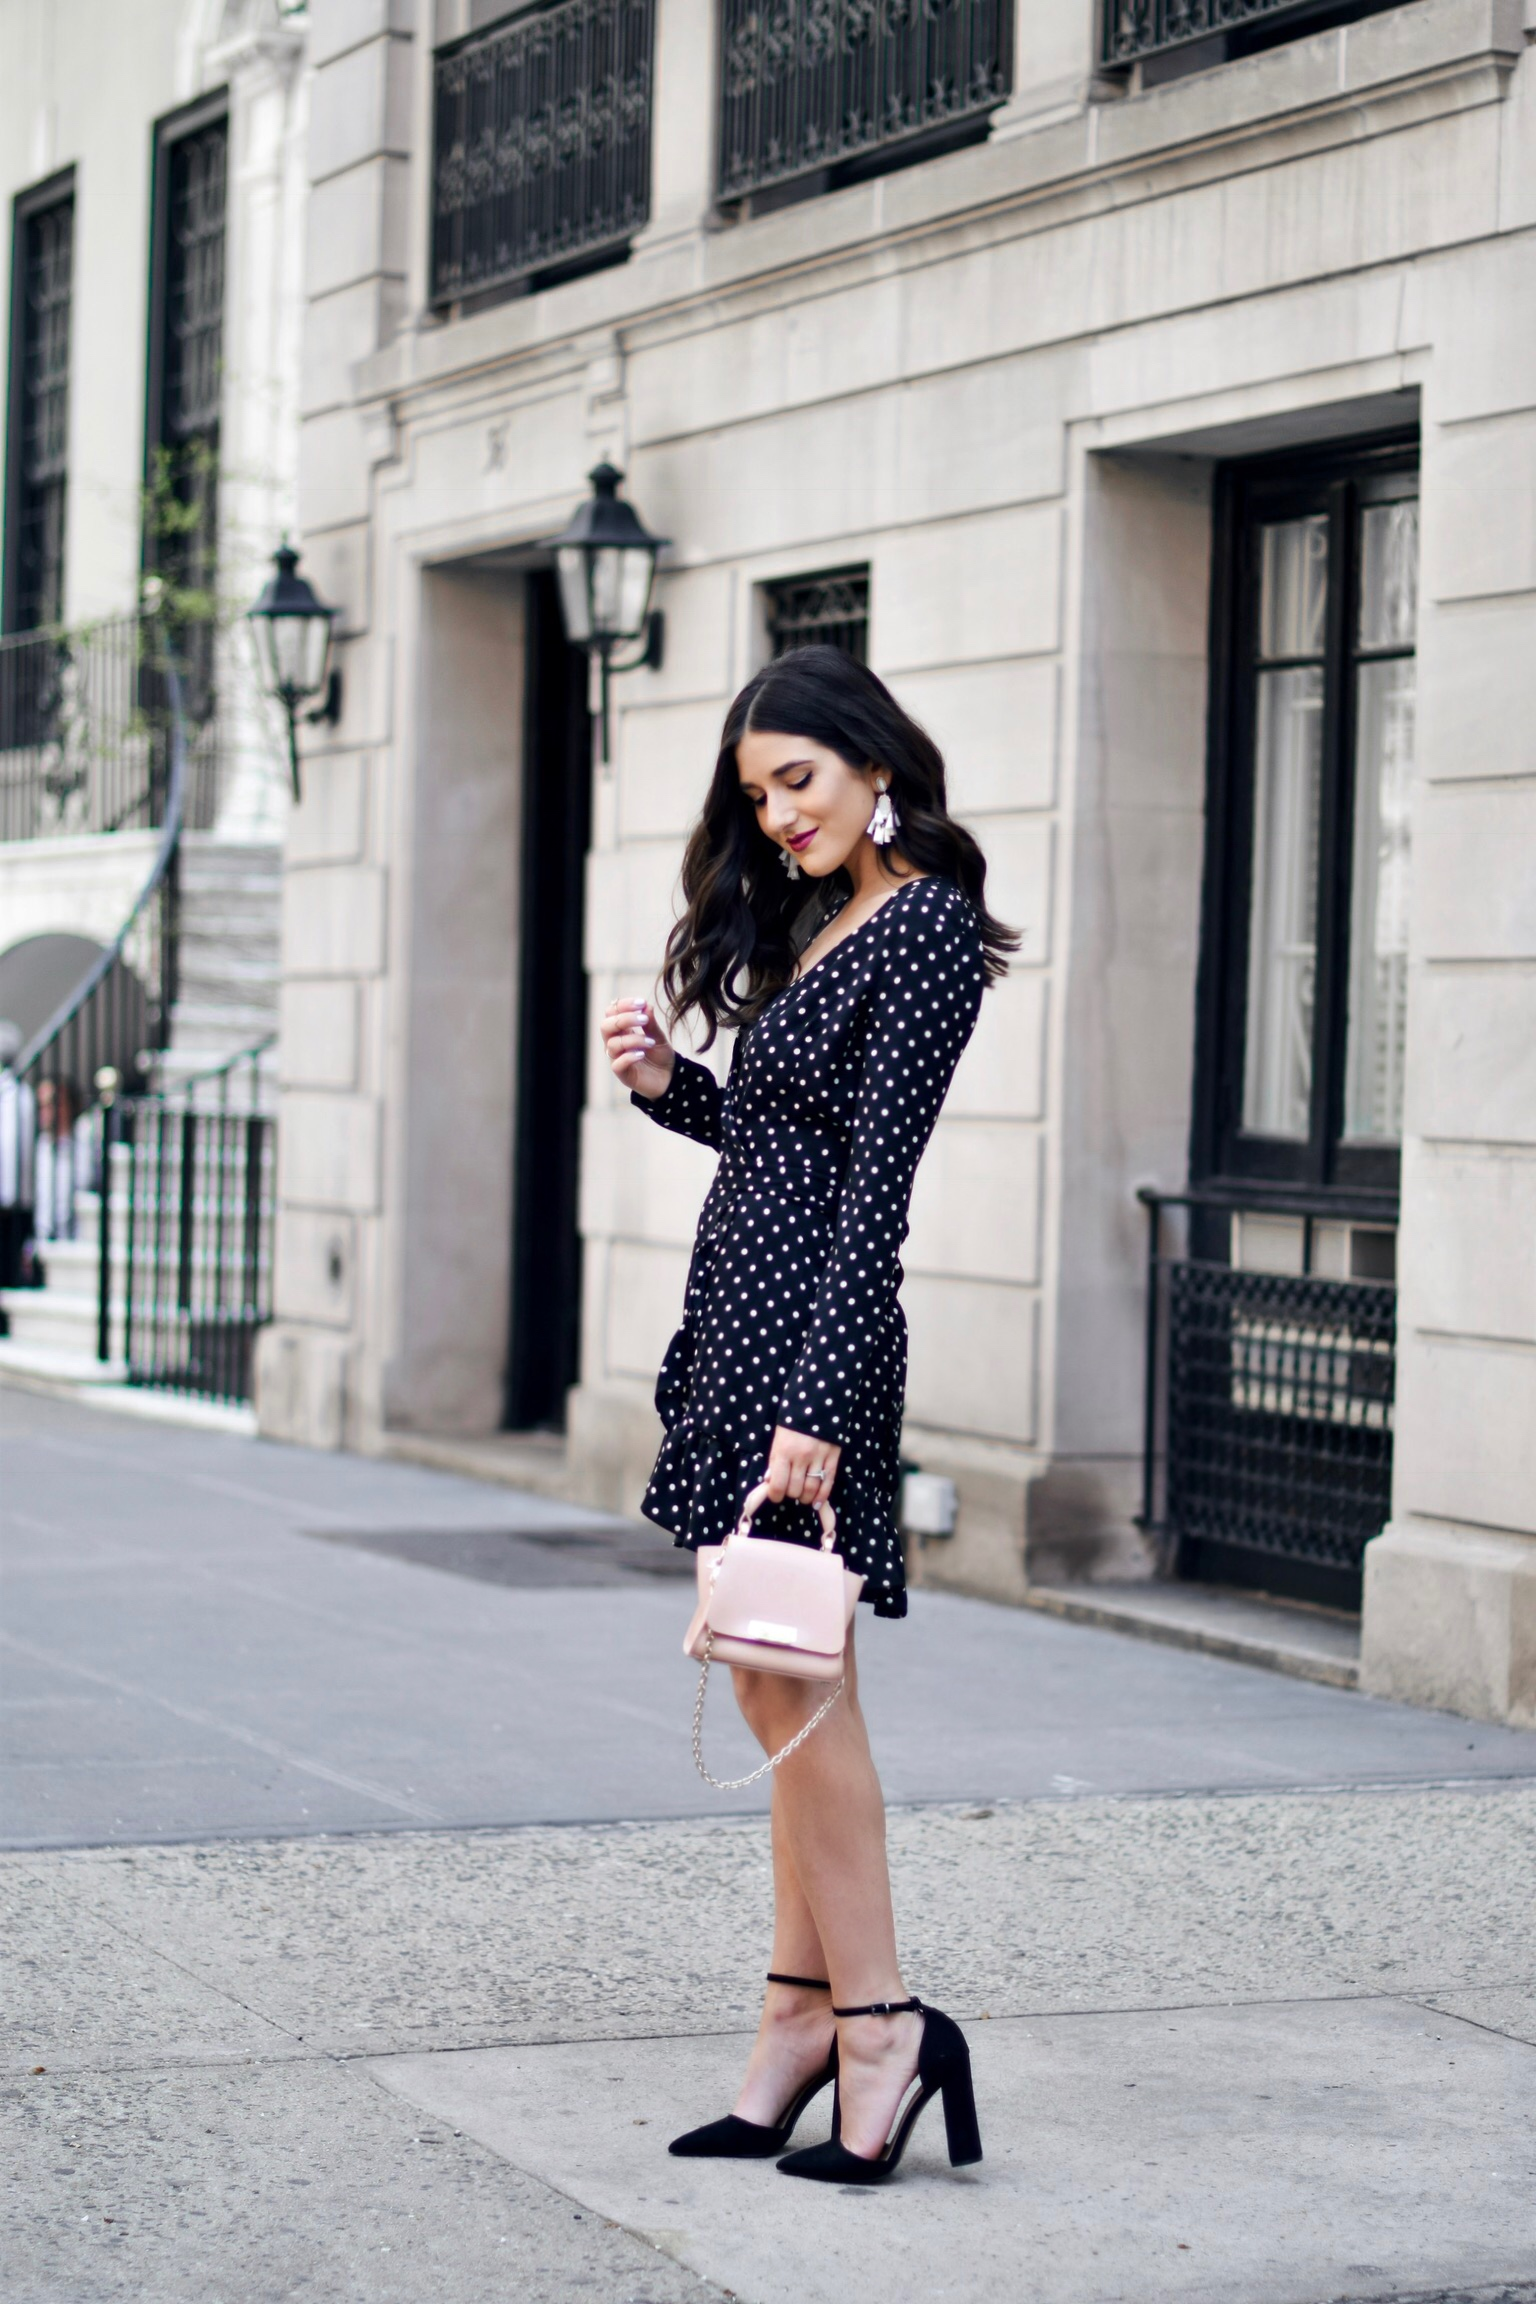 Polka Dot Wrap Dress Statement Earrings My 5 Blogging Rules While On My Honeymoon Esther Santer Fashion Blog NYC Street Style Blogger Outfit OOTD Trendy Kendra Scott ASOS Travel Content Married Husband Happy Summer Beautiful Bag Pointy Toe Ankle Strap.JPG